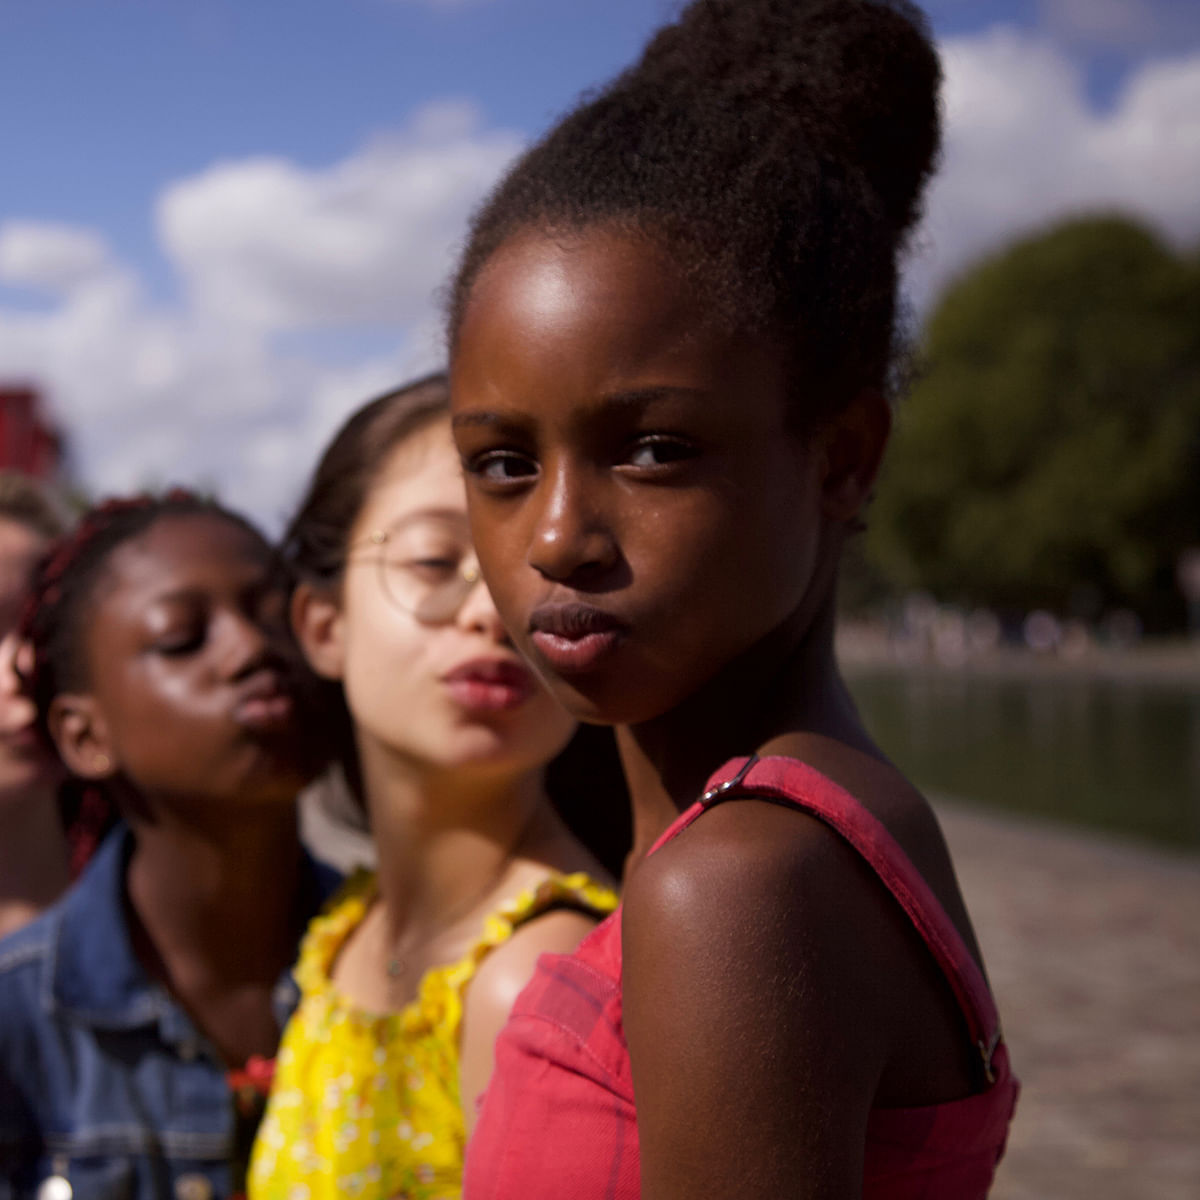 'Depicts lewd visuals of children': Texas grand jury indicts Netflix for promotion of French film 'Cuties'